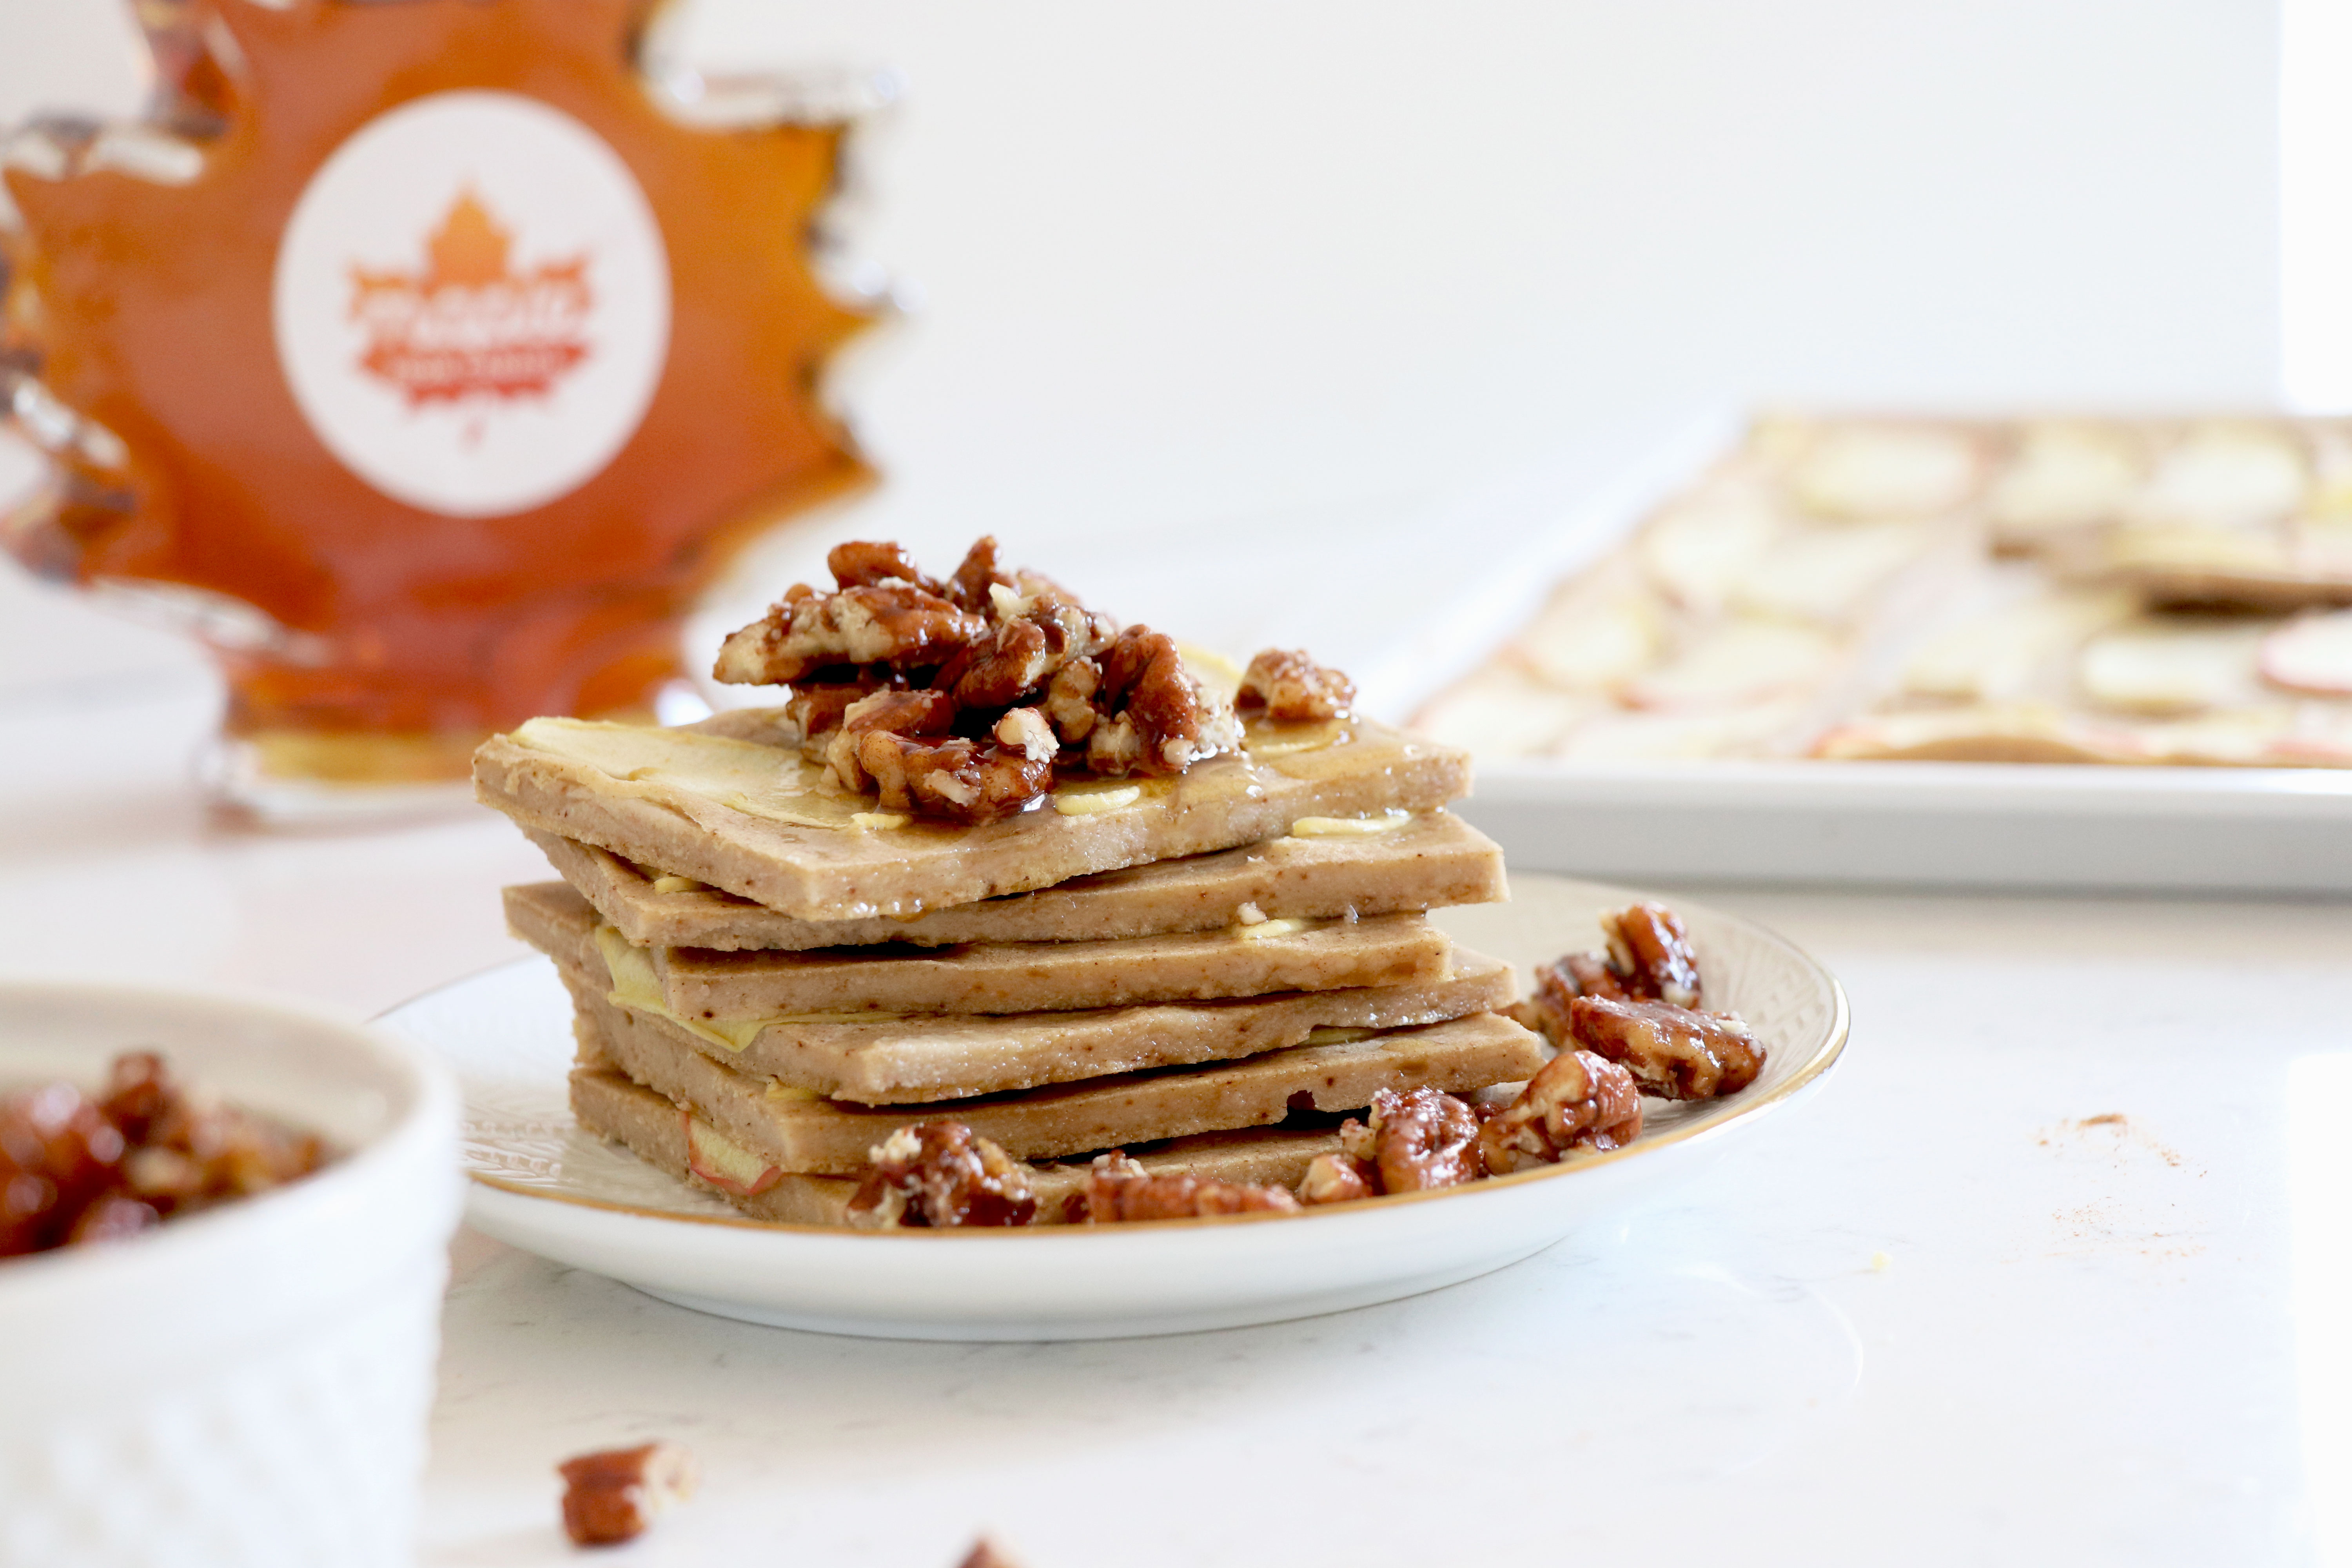 Plate with pancakes topped with pecans.